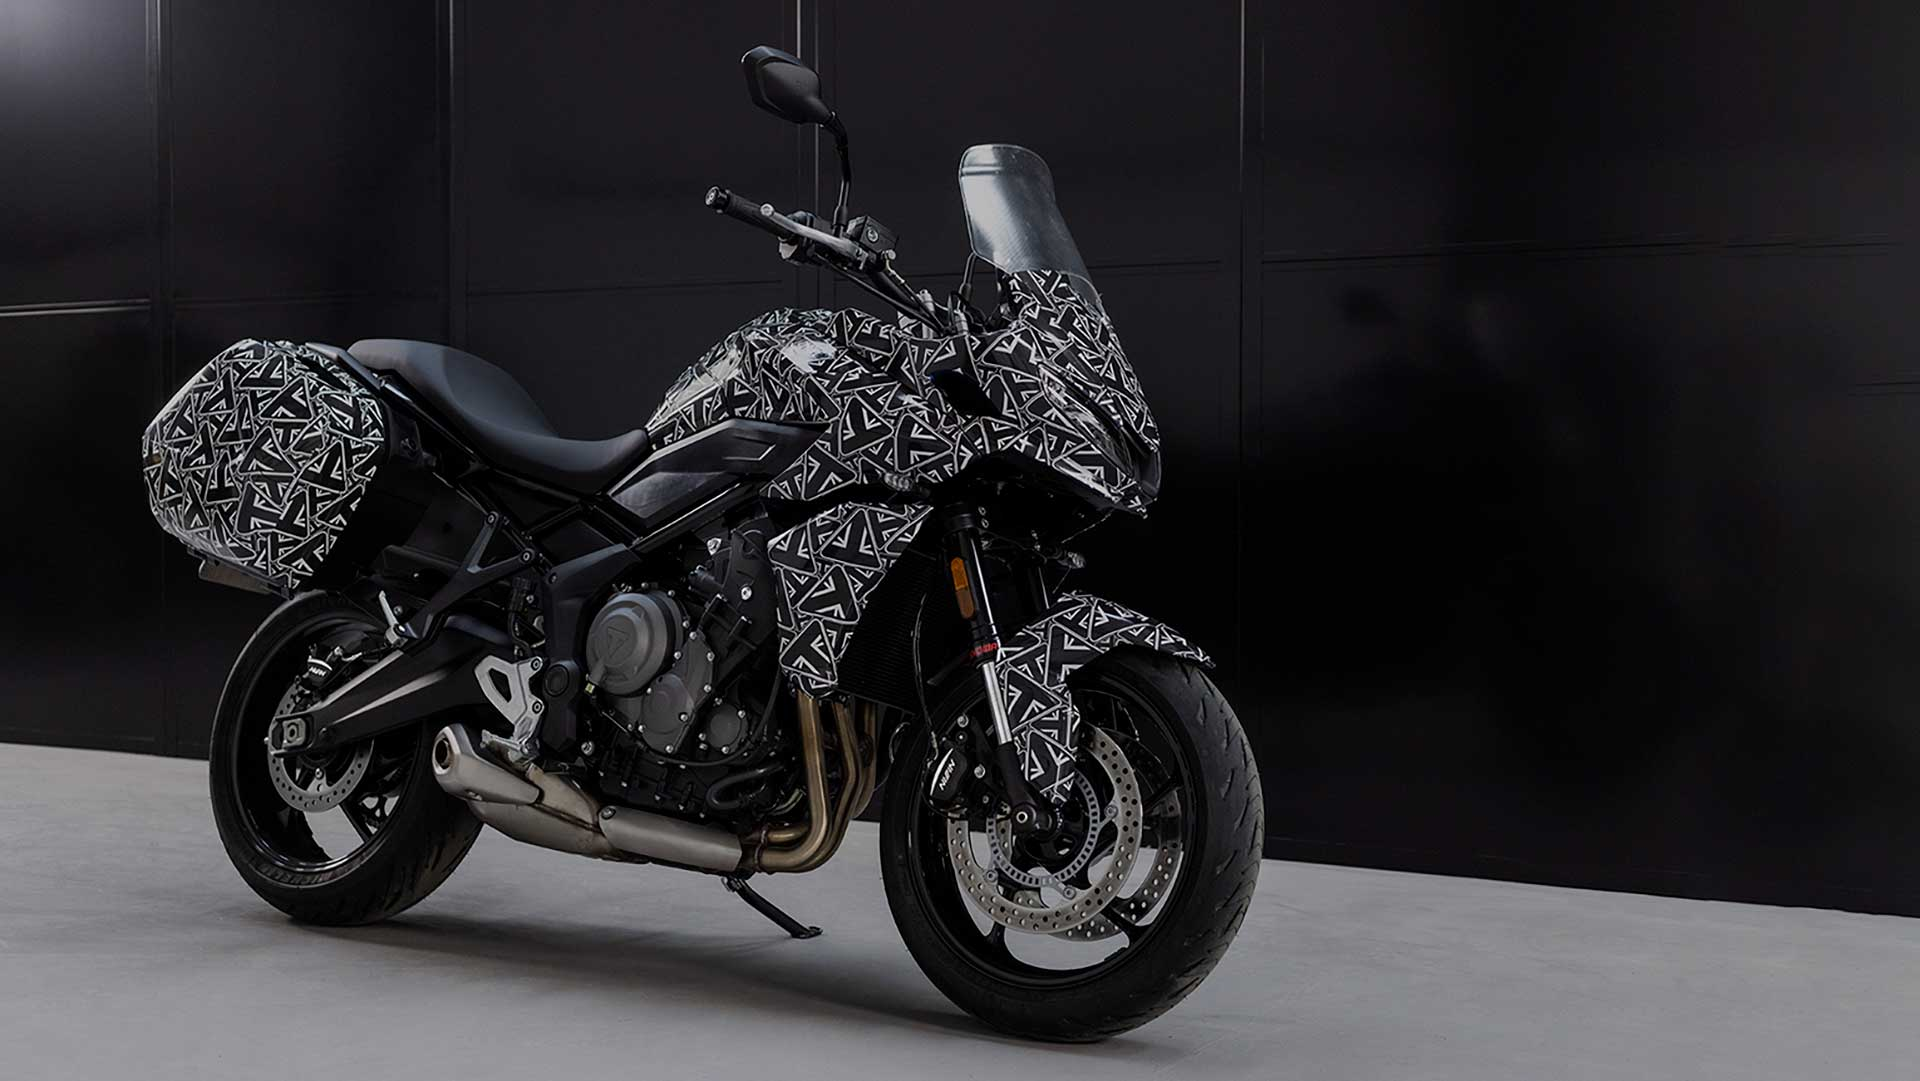 A view of the new Triumph Tiger prototype, features in a Triumph Tiger Tease release from the UK company.